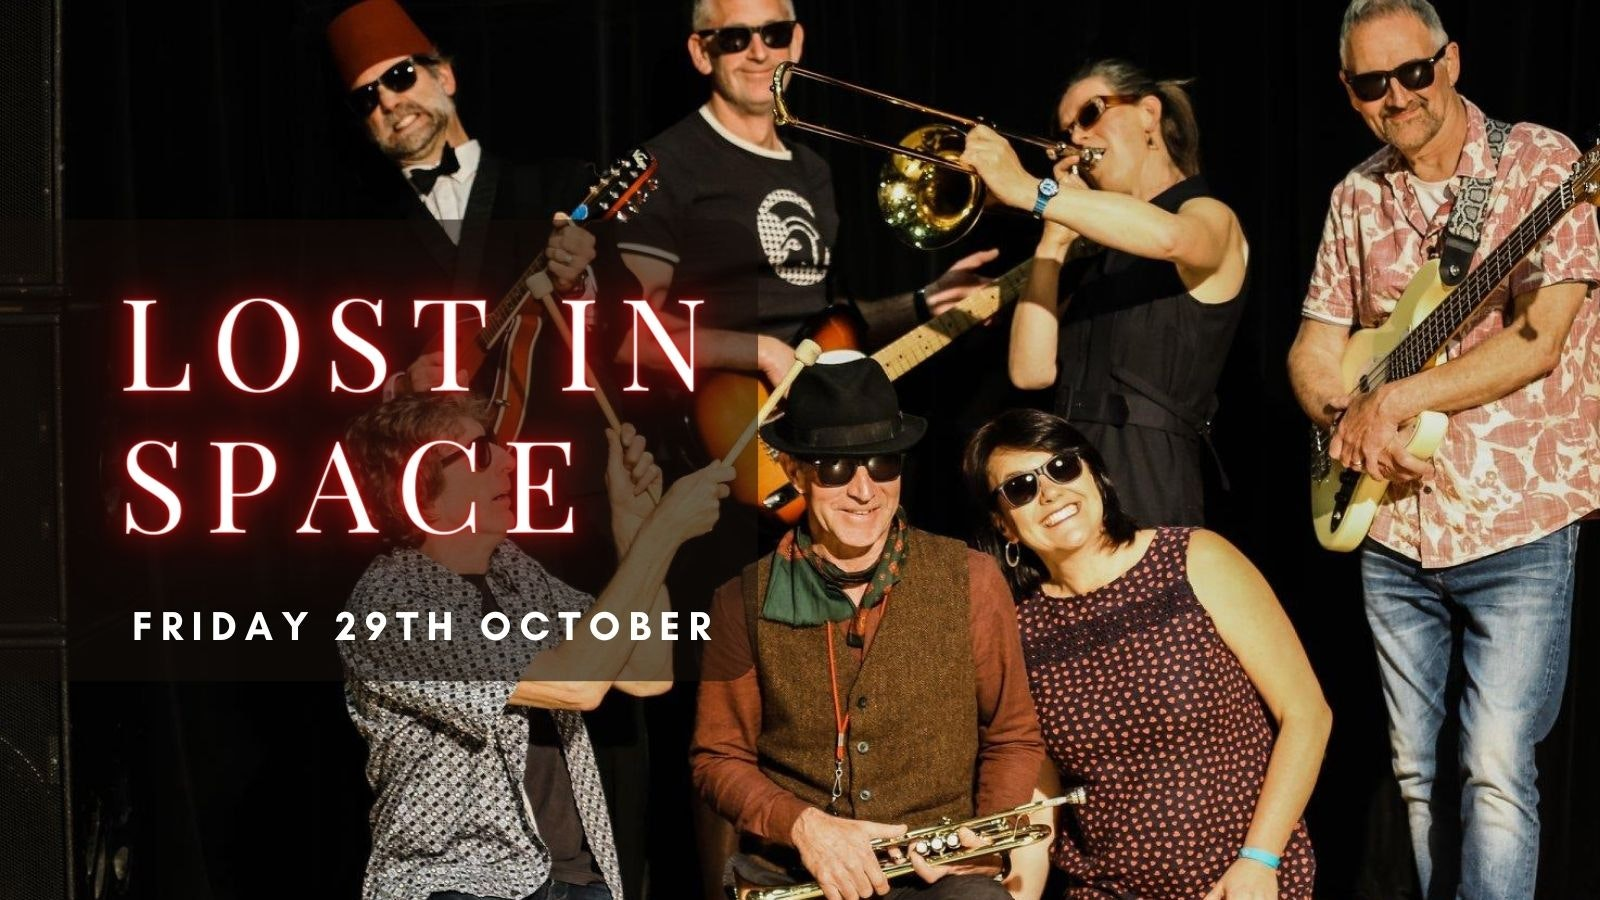 LOST IN SPACE | Plymouth, Annabel's Cabaret & Discotheque